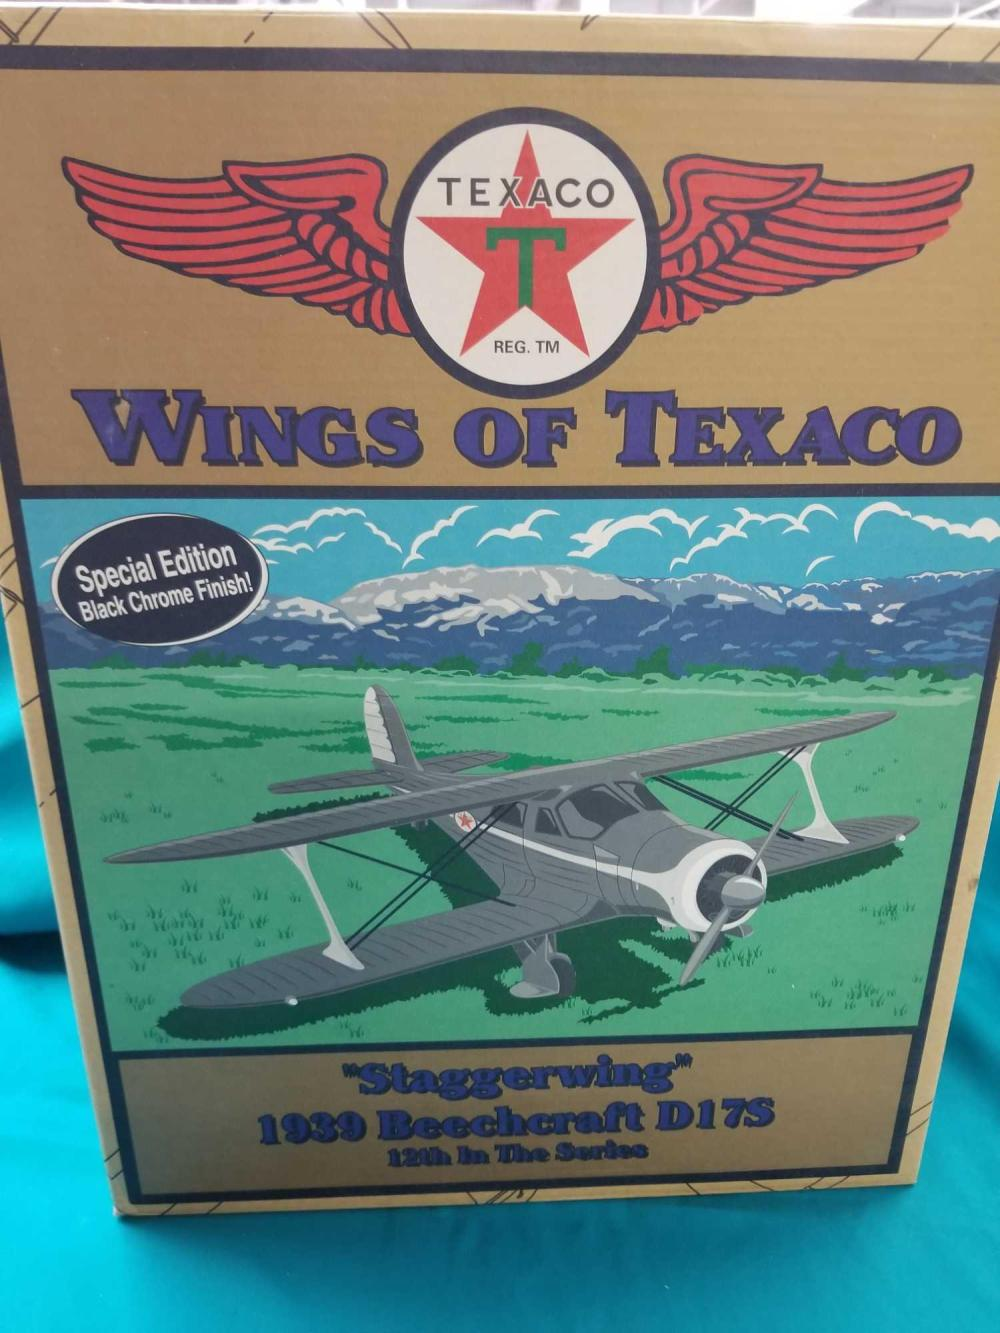 """WINGS OF TEXACO """"STAGGERWING"""" 1939 BEECHCRAFT D 17S DIE CAST AIRPLANE BANK BY ERTL IN THE BOX"""